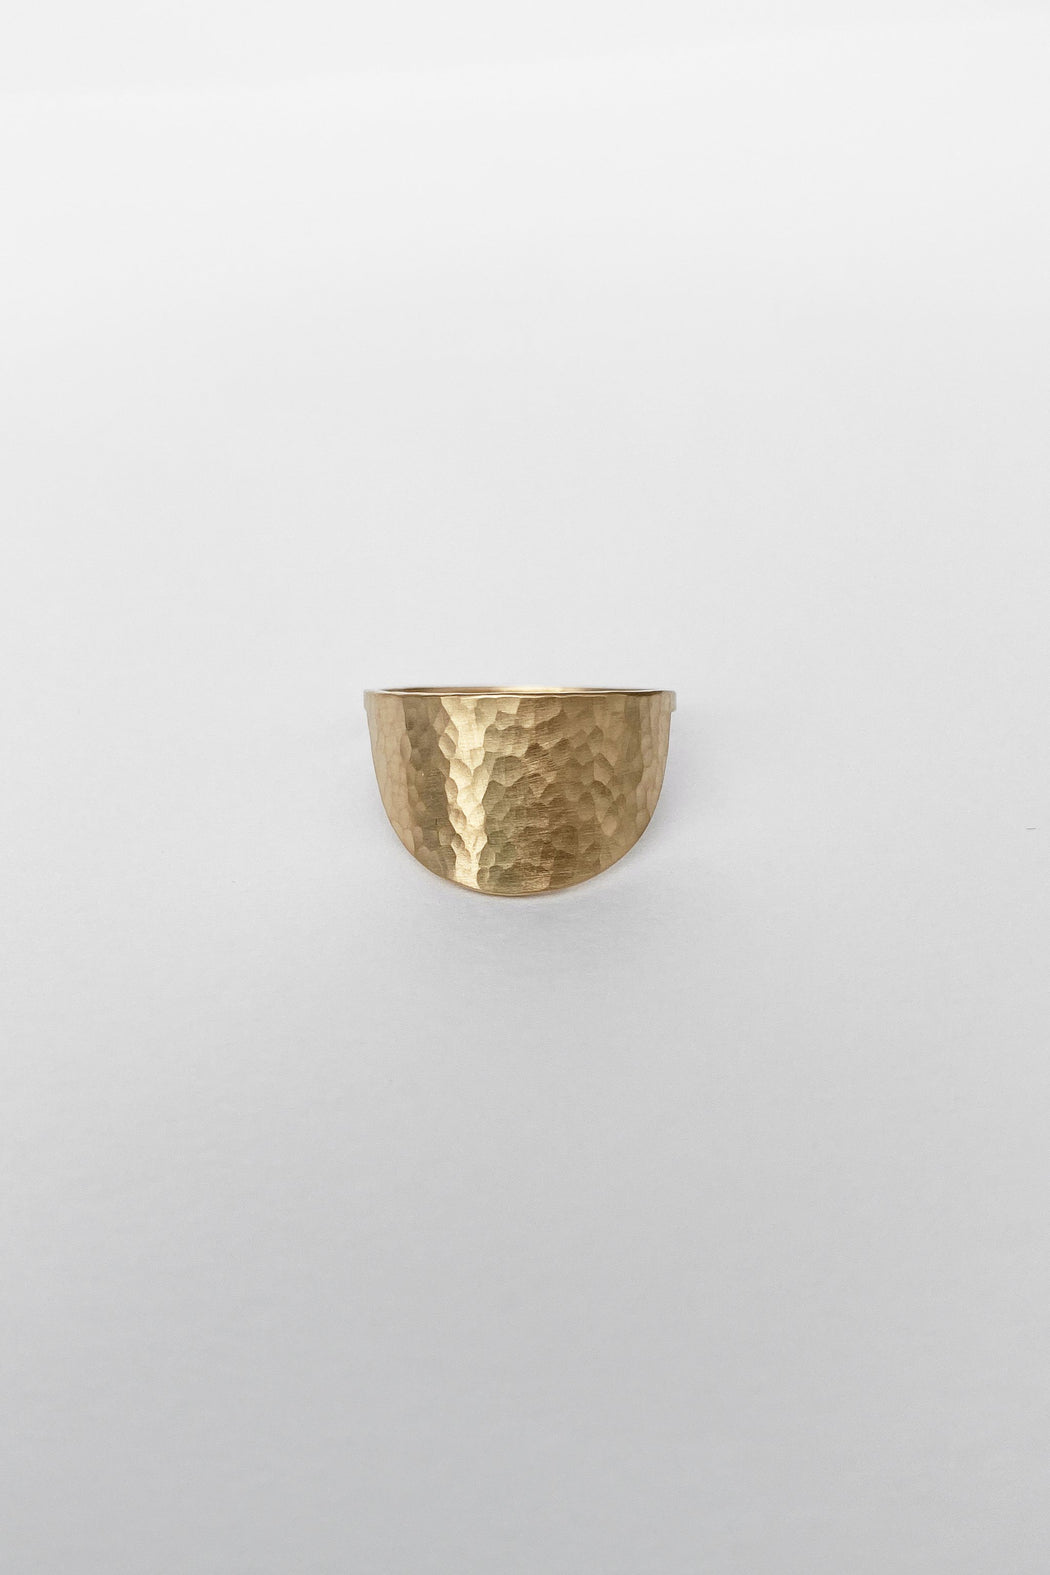 BAIUSHKI ORO ring